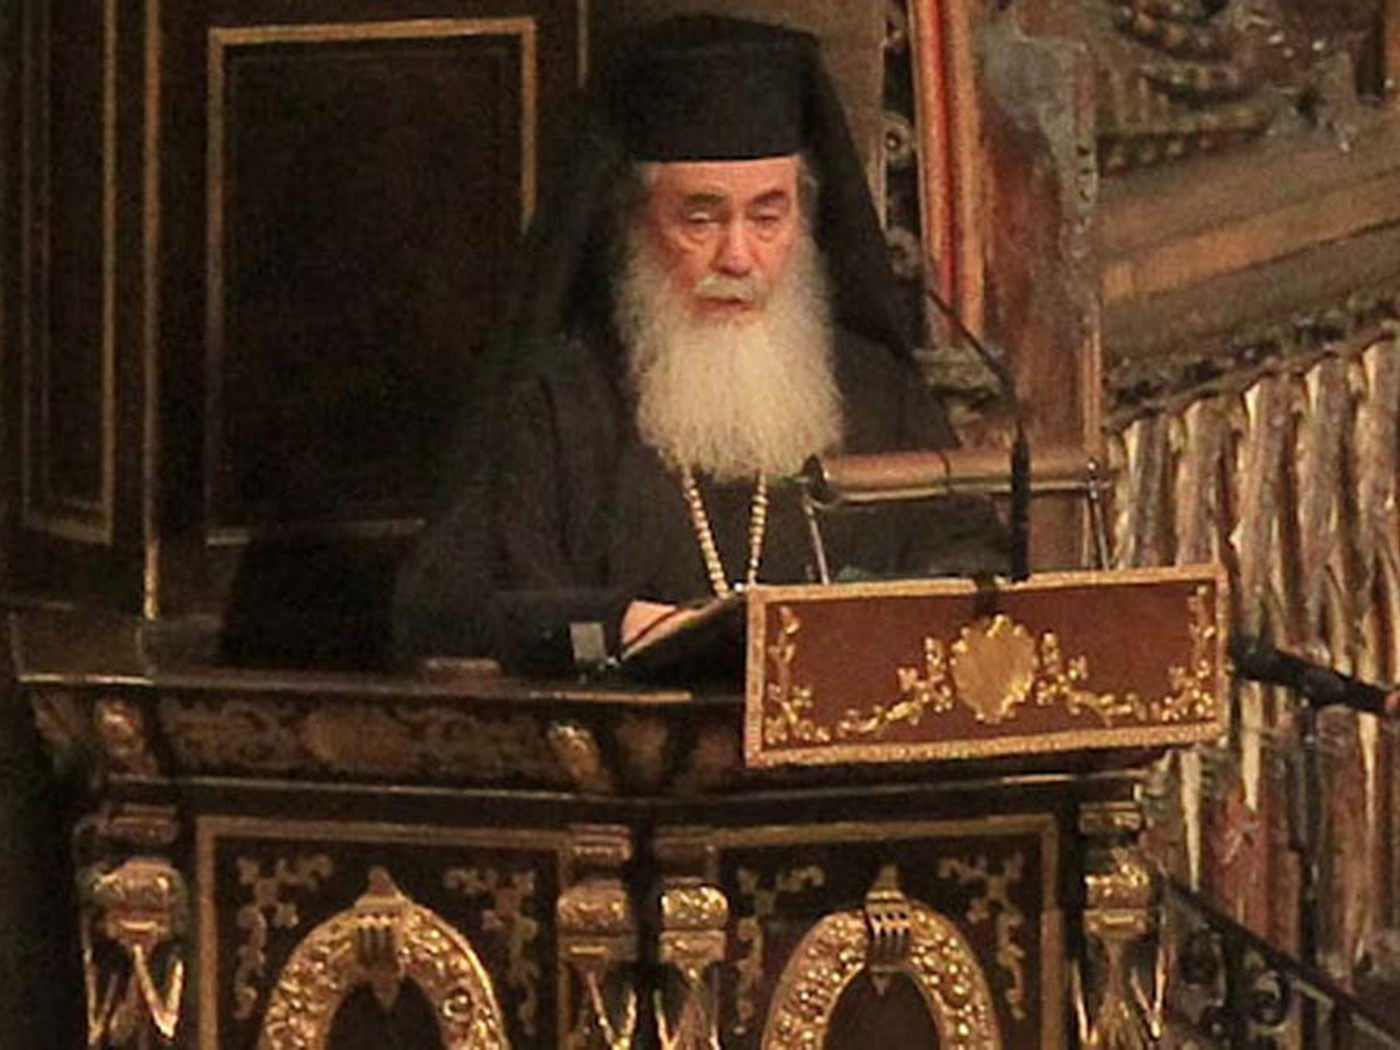 His Beatitude Theophilos III, Patriarch of Jerusalem, reads a Reflection